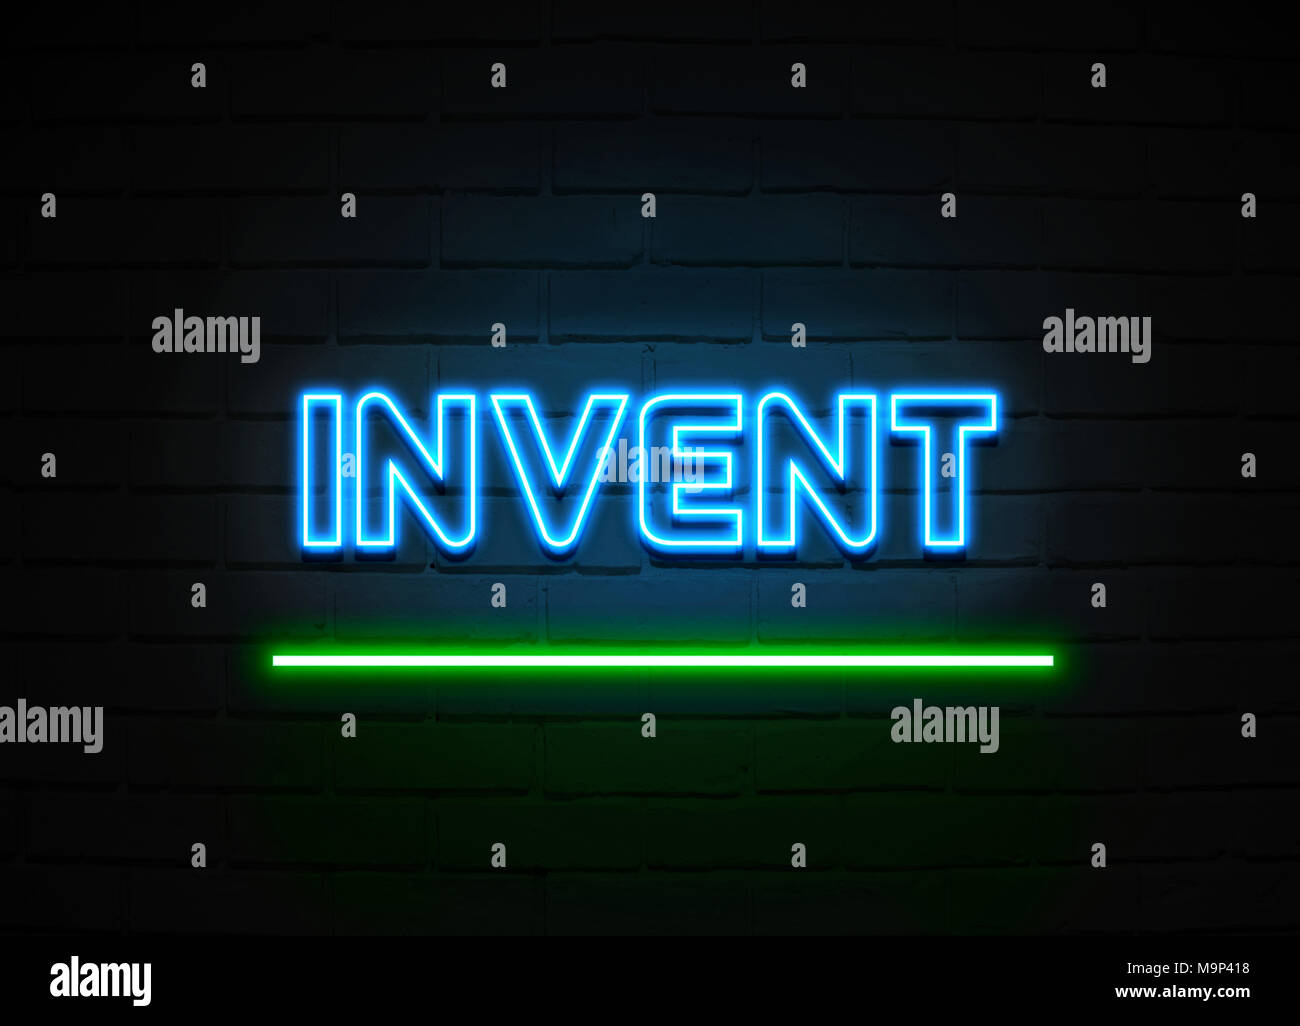 Invent neon sign - Glowing Neon Sign on brickwall wall - 3D rendered royalty free stock illustration. - Stock Image